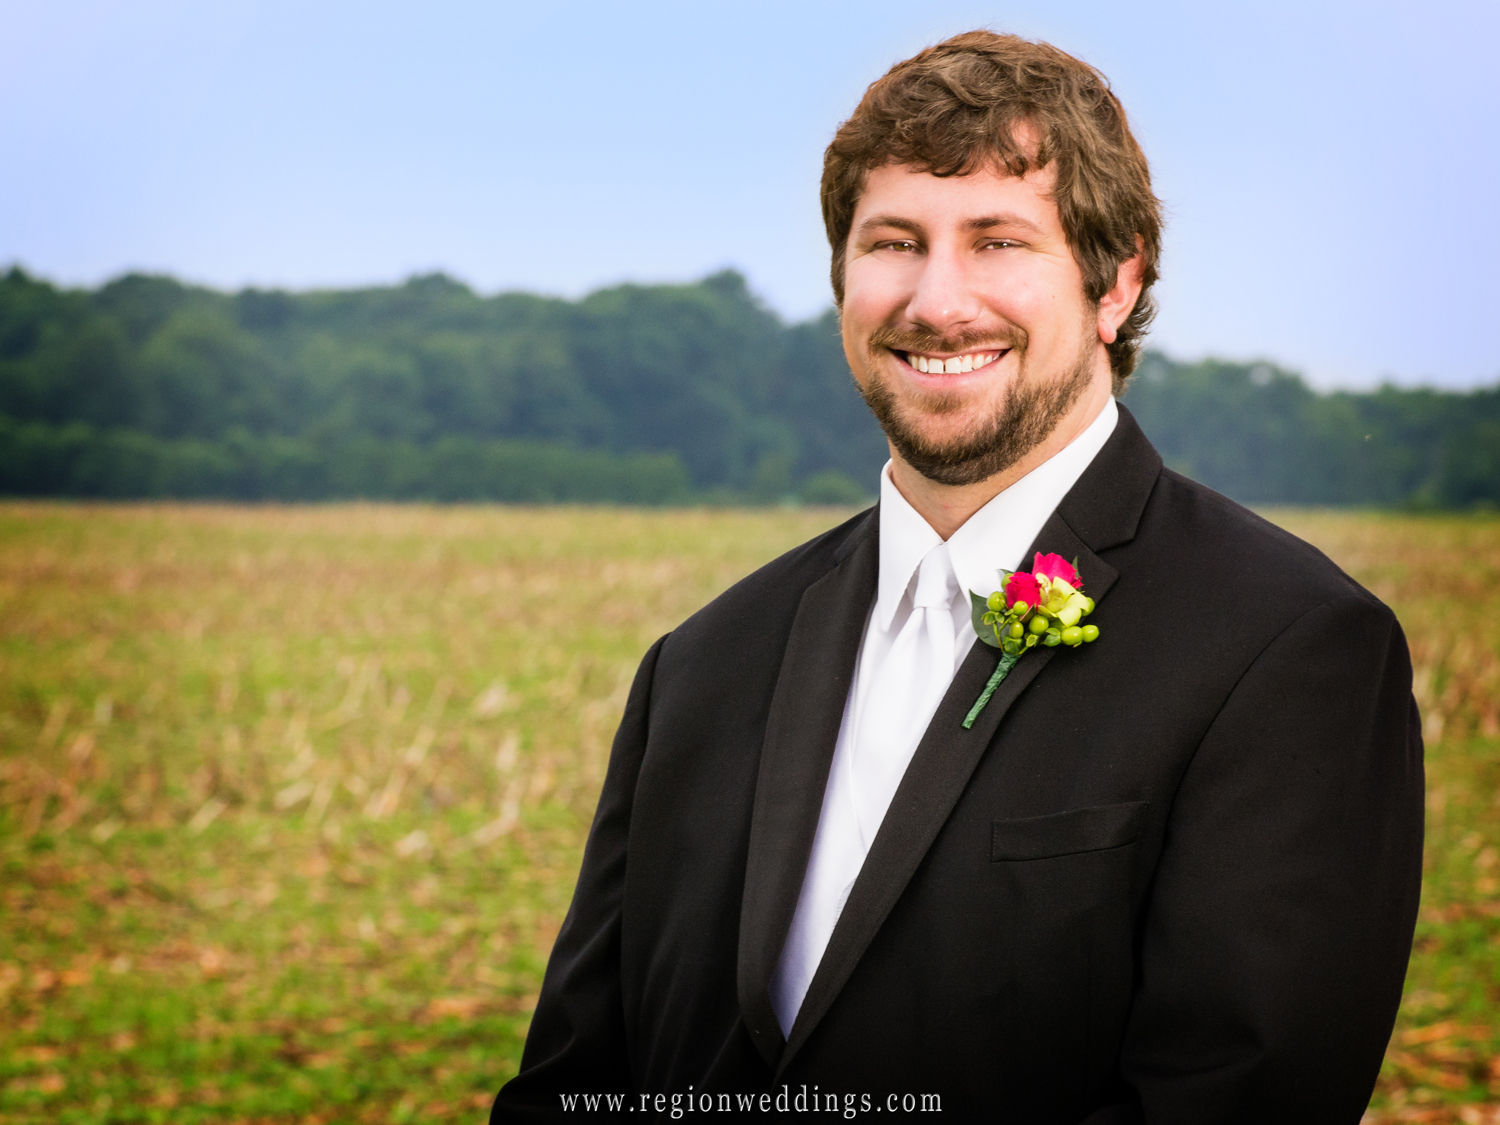 The groom smiles for his wedding portrait amongst the farm land outside Saint Elizabeth Ann Seton Church in Valparaiso, Indiana.